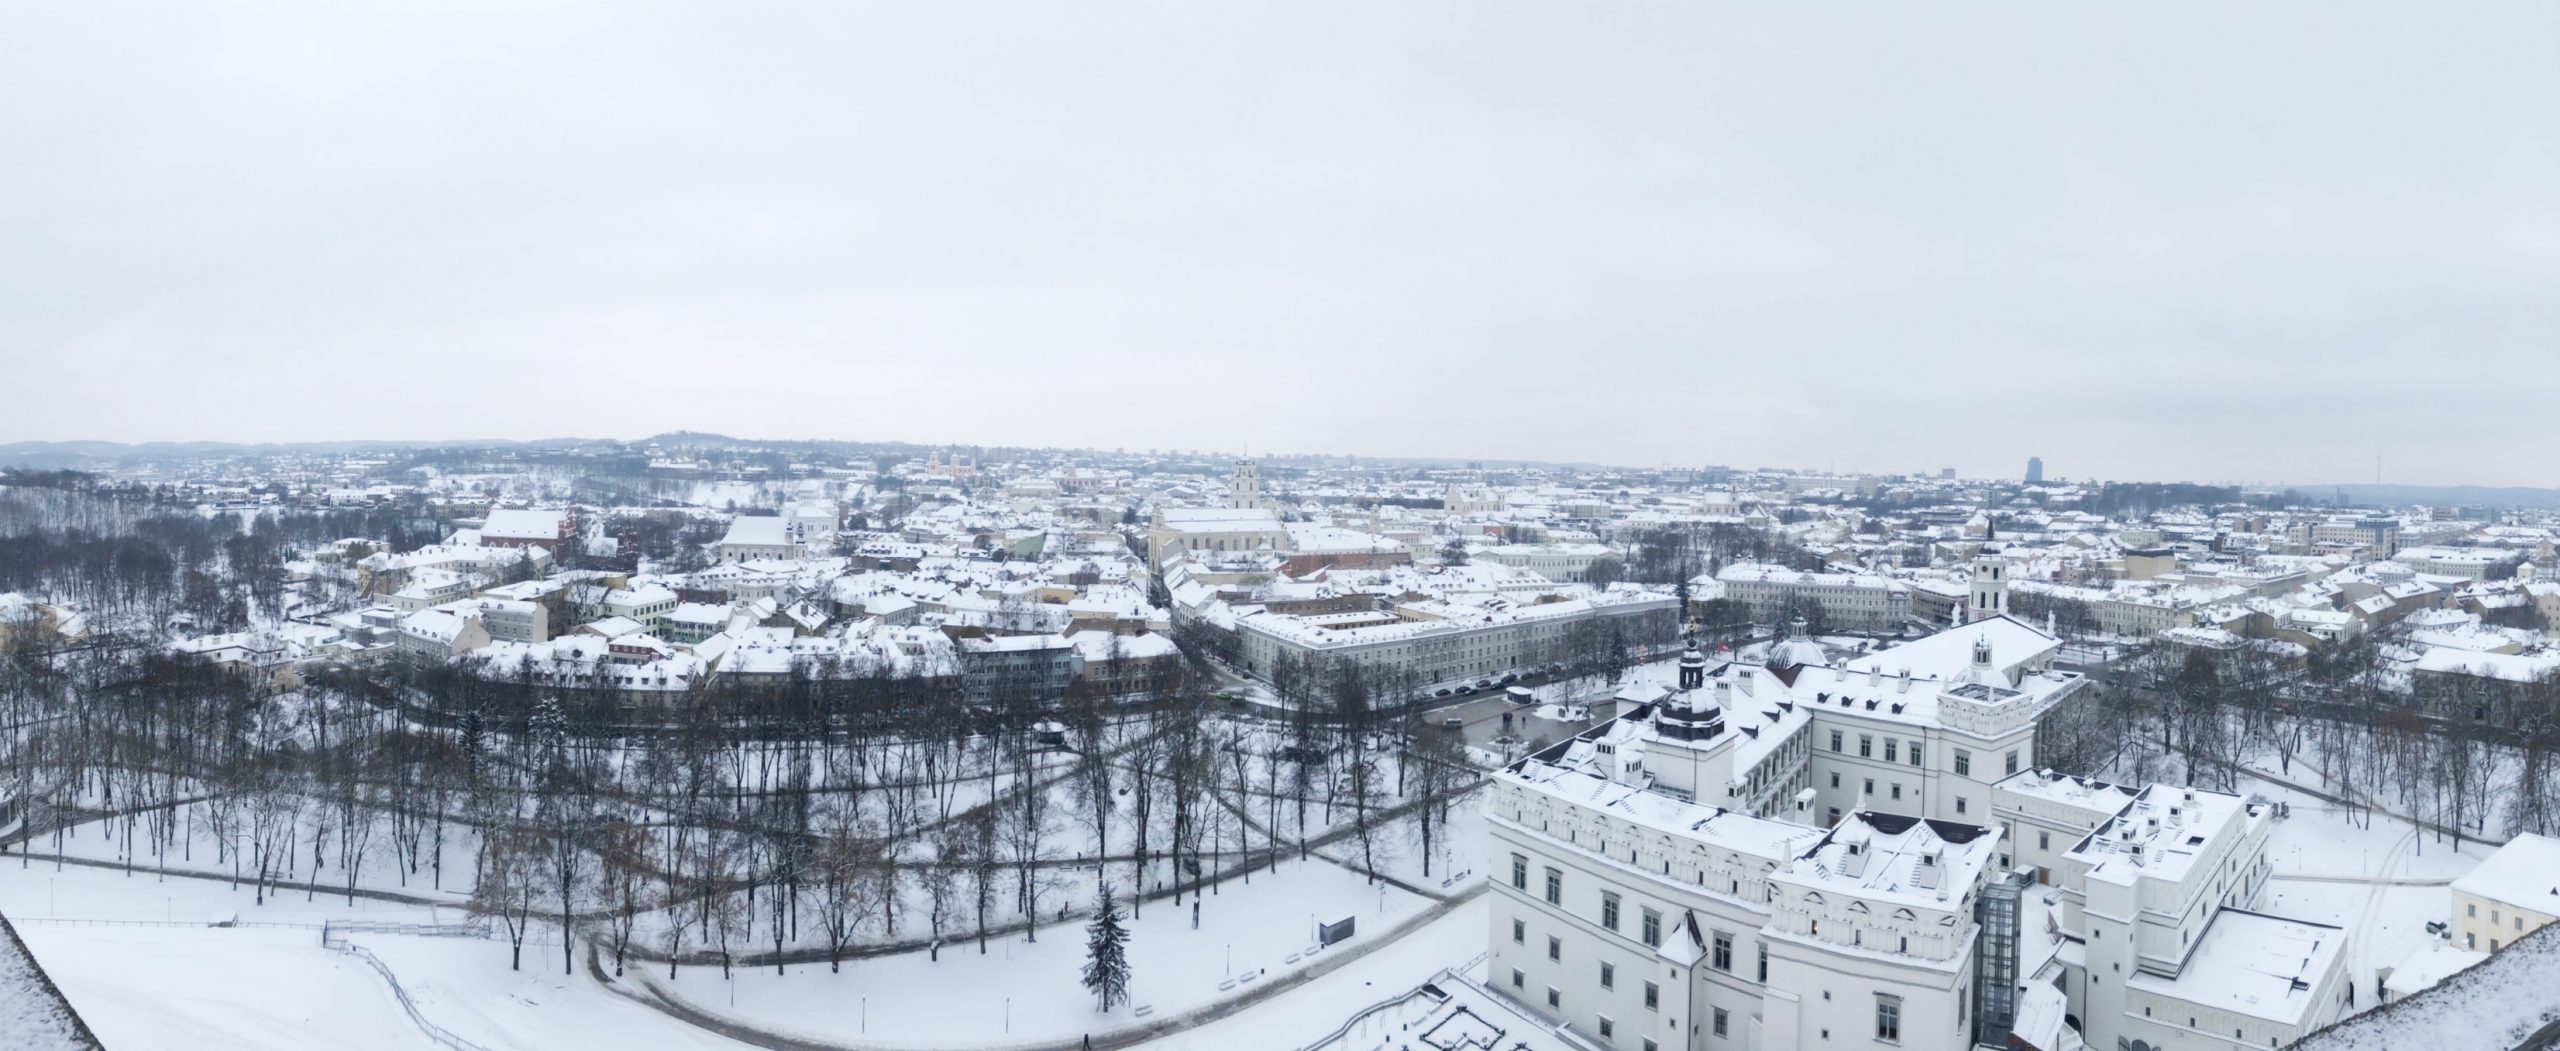 Things to Do in Vilnius: A Snowy Weekend in the G-spot of Europe